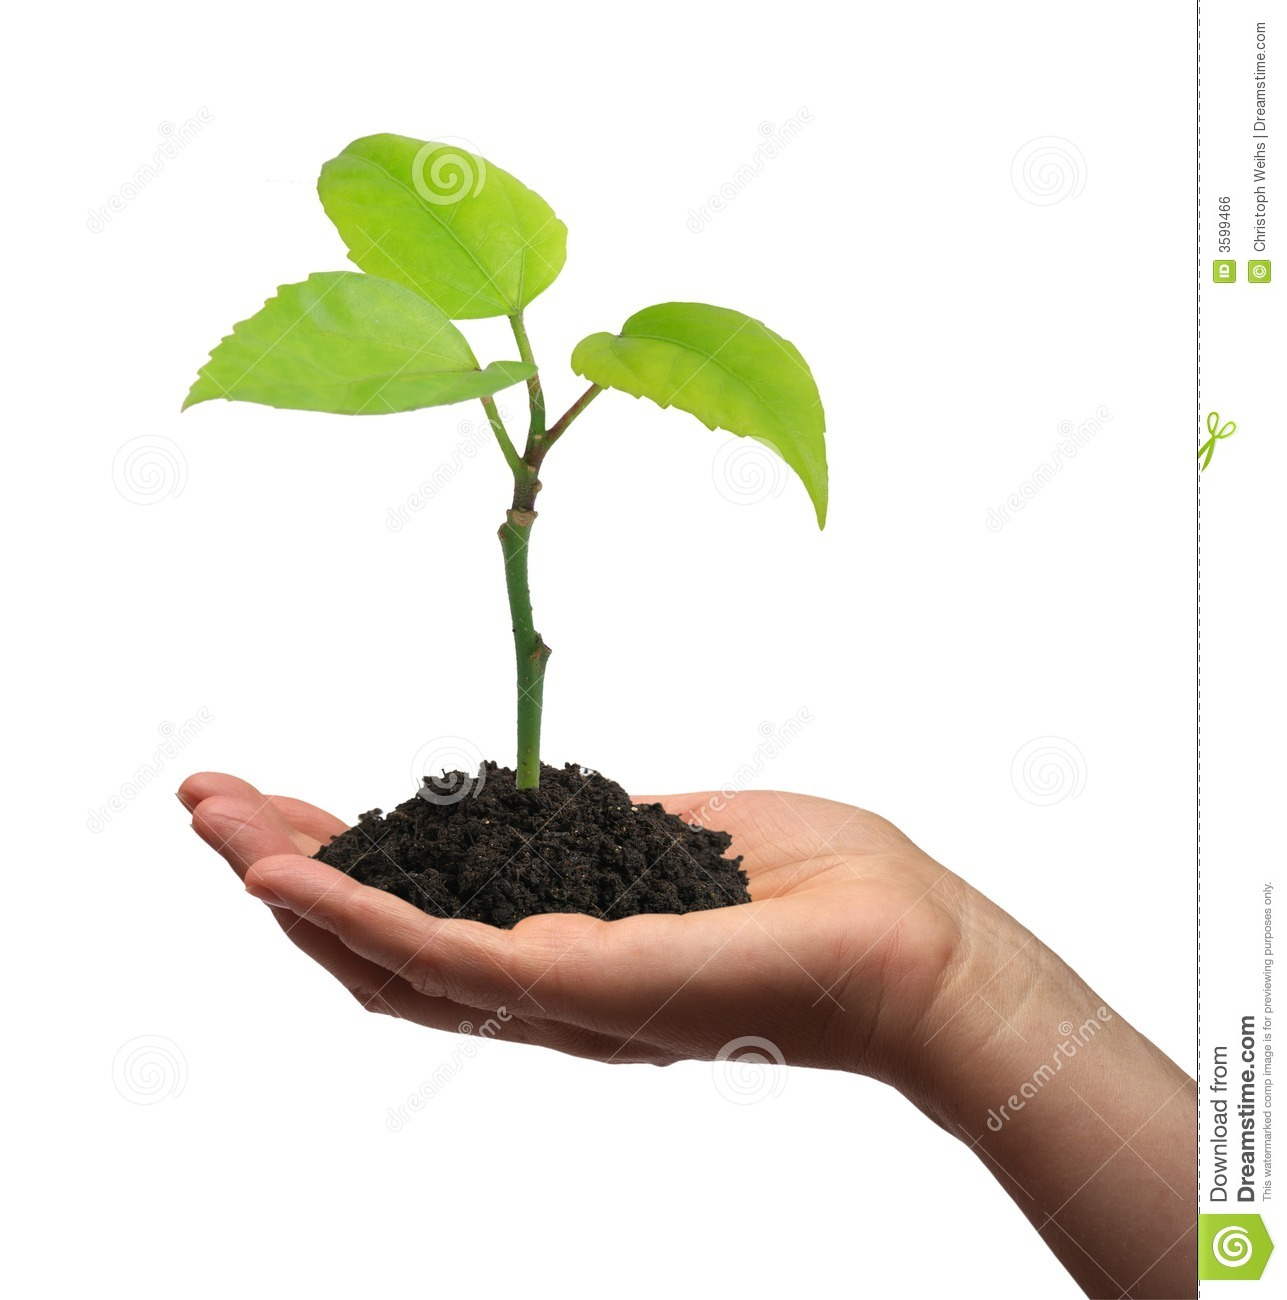 Growing Plant Royalty Free Stock Image - Image: 3599466